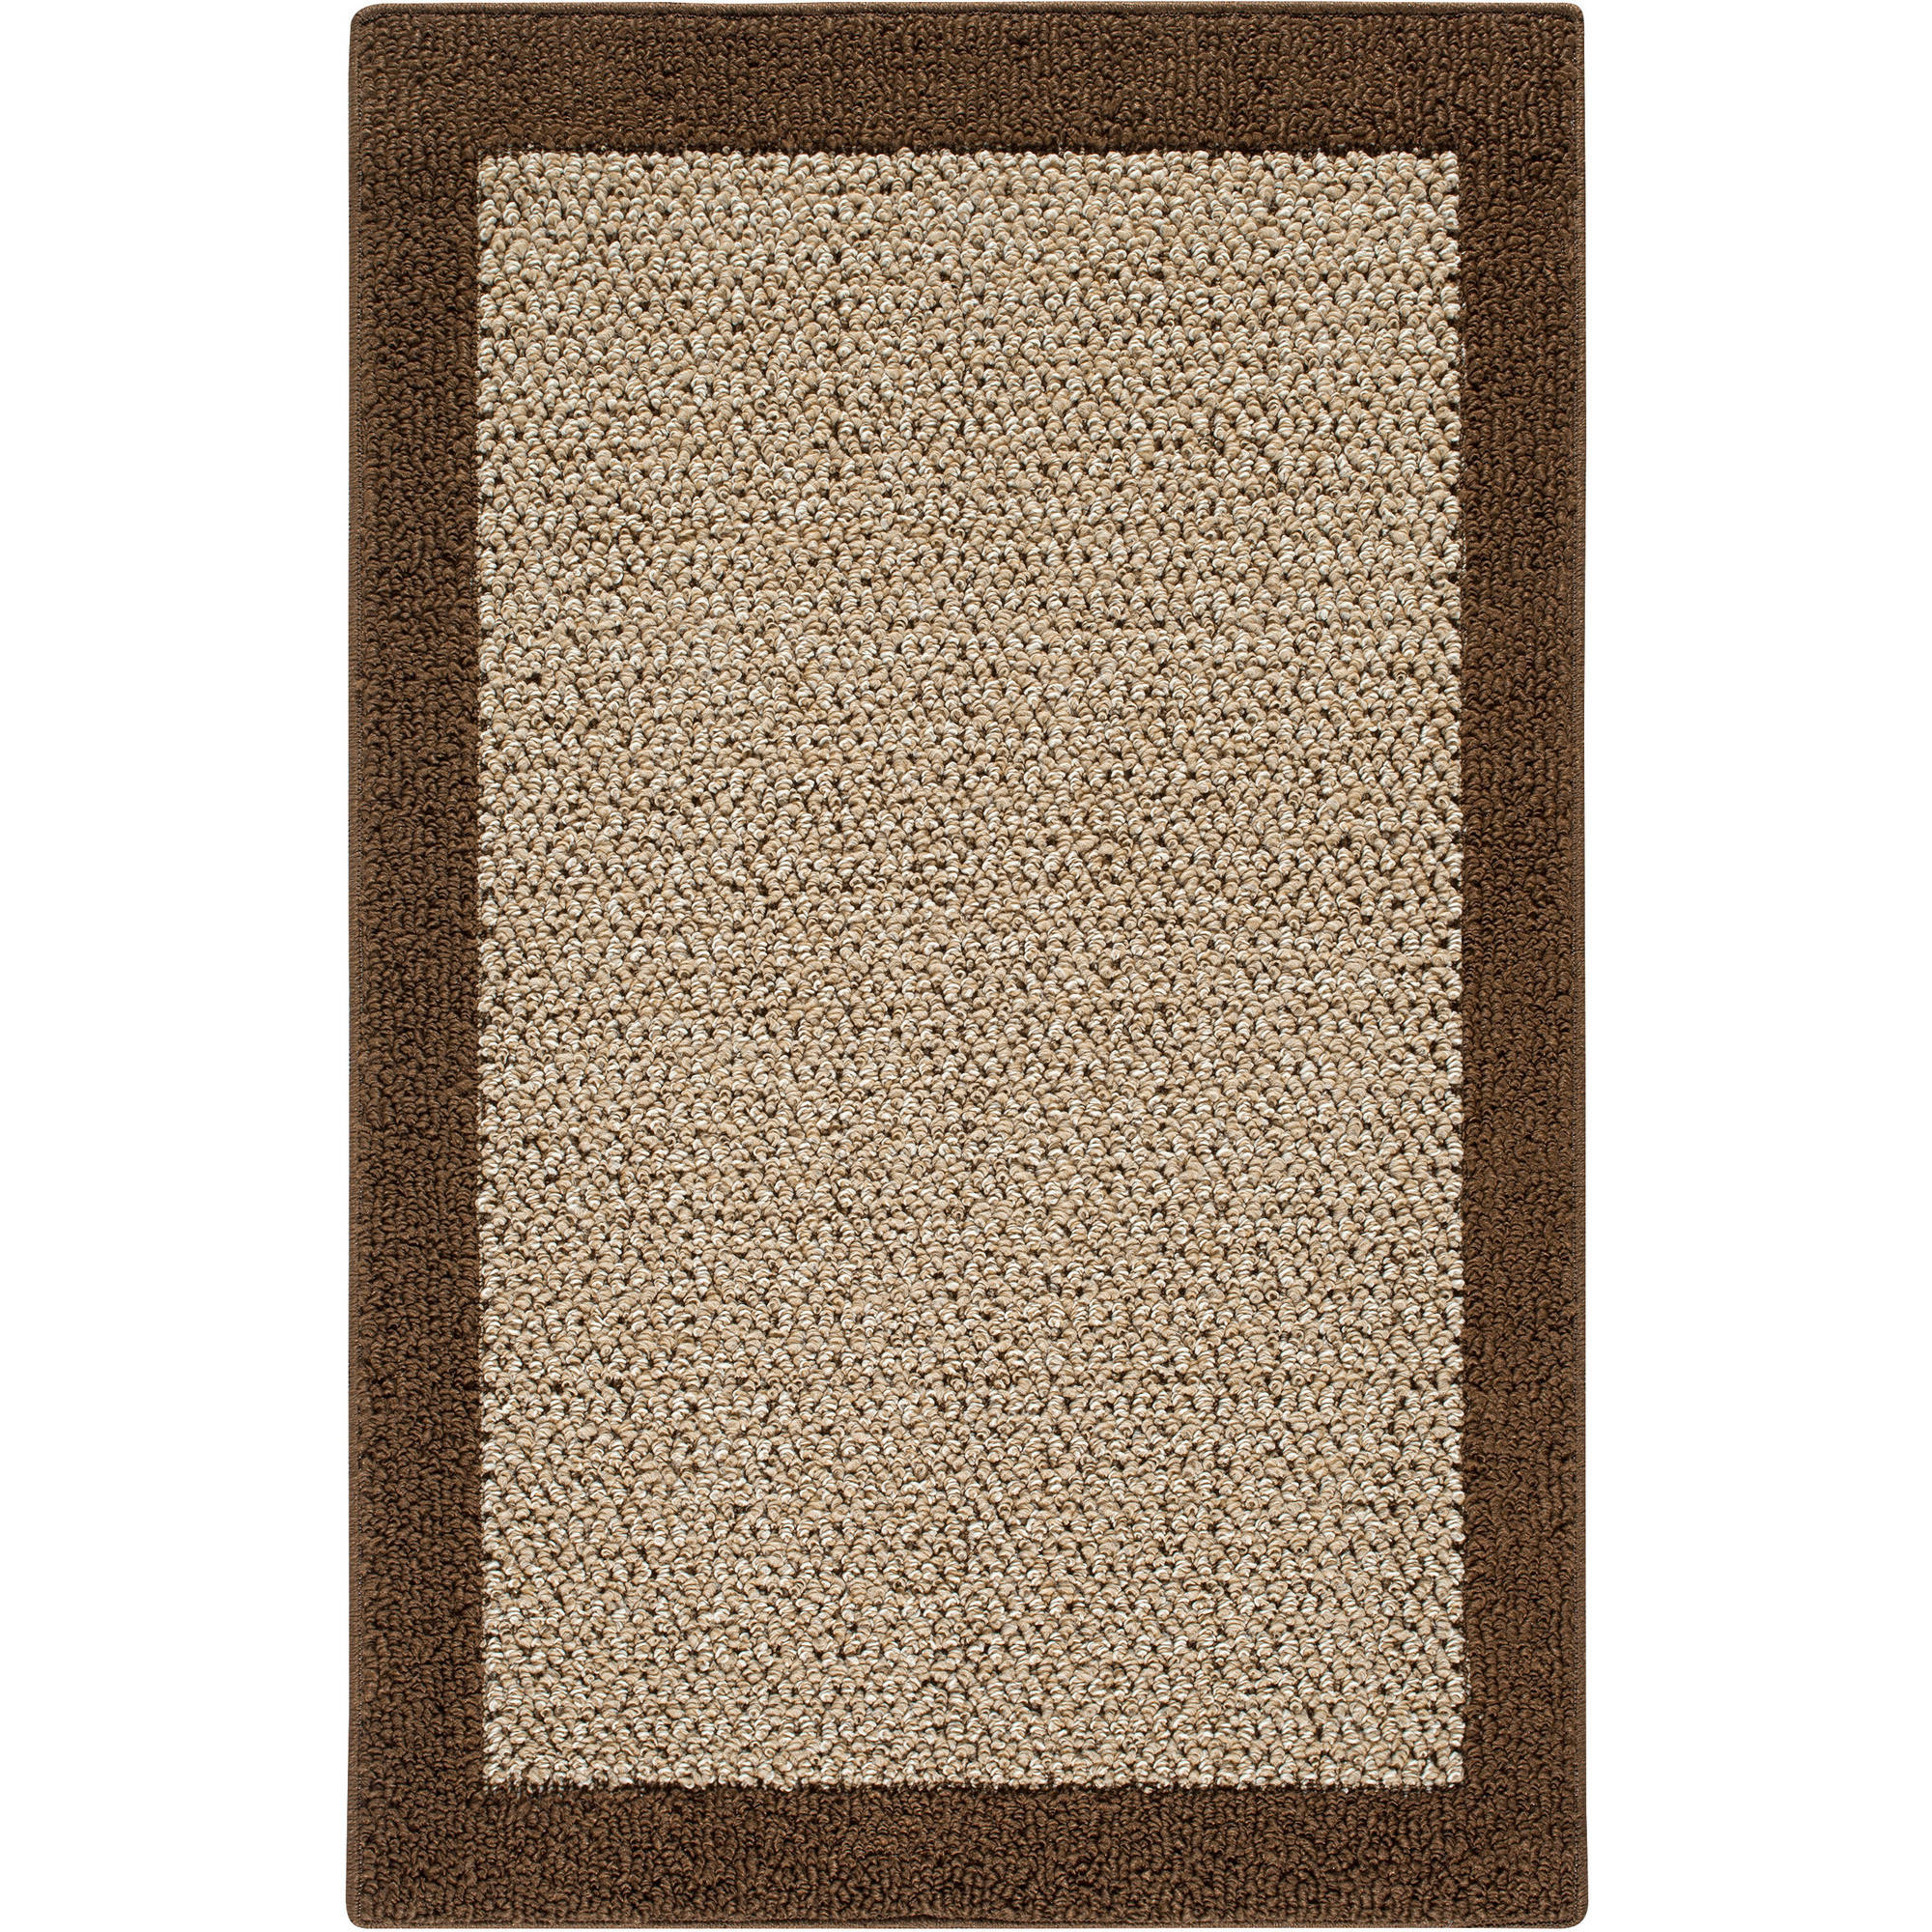 Sisal Rugs Used To Make A Percentage Of The Best Rugs In